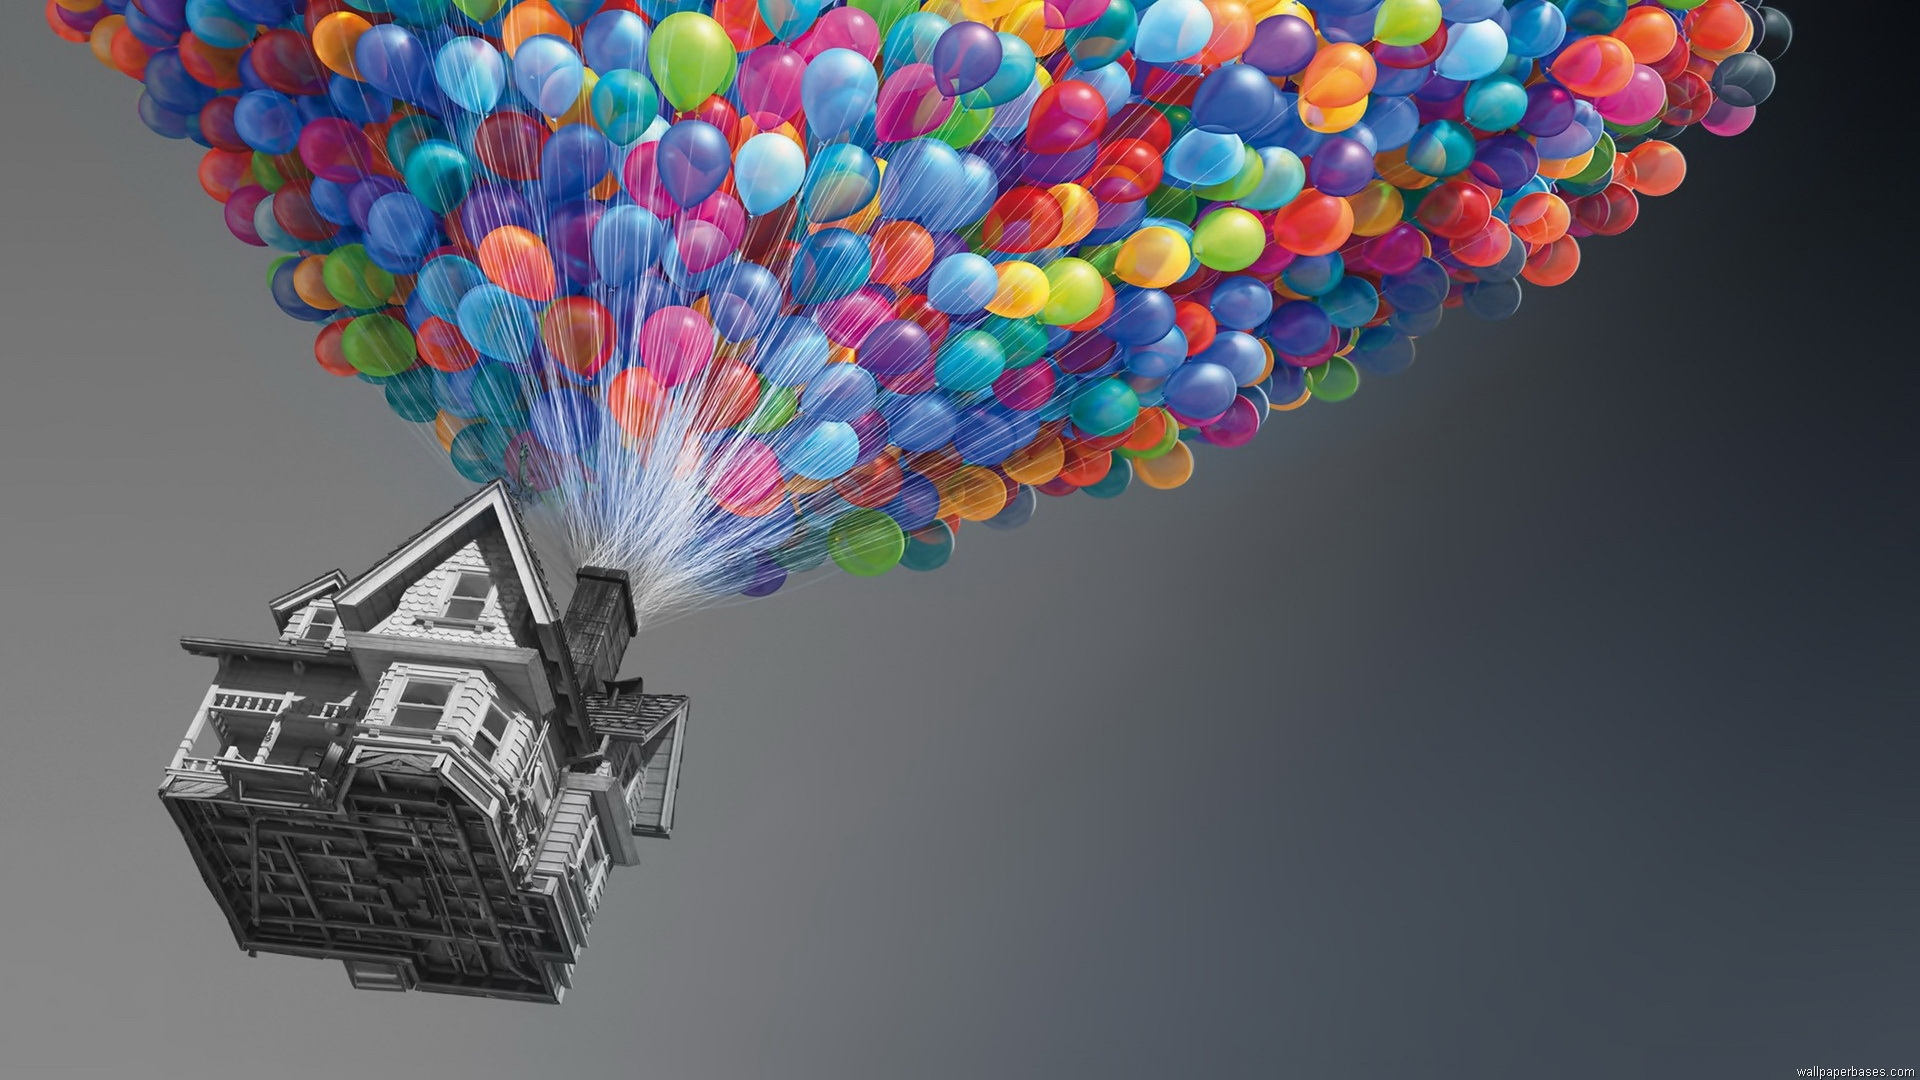 Colorful Wallpapers, House in the Air with Balloons